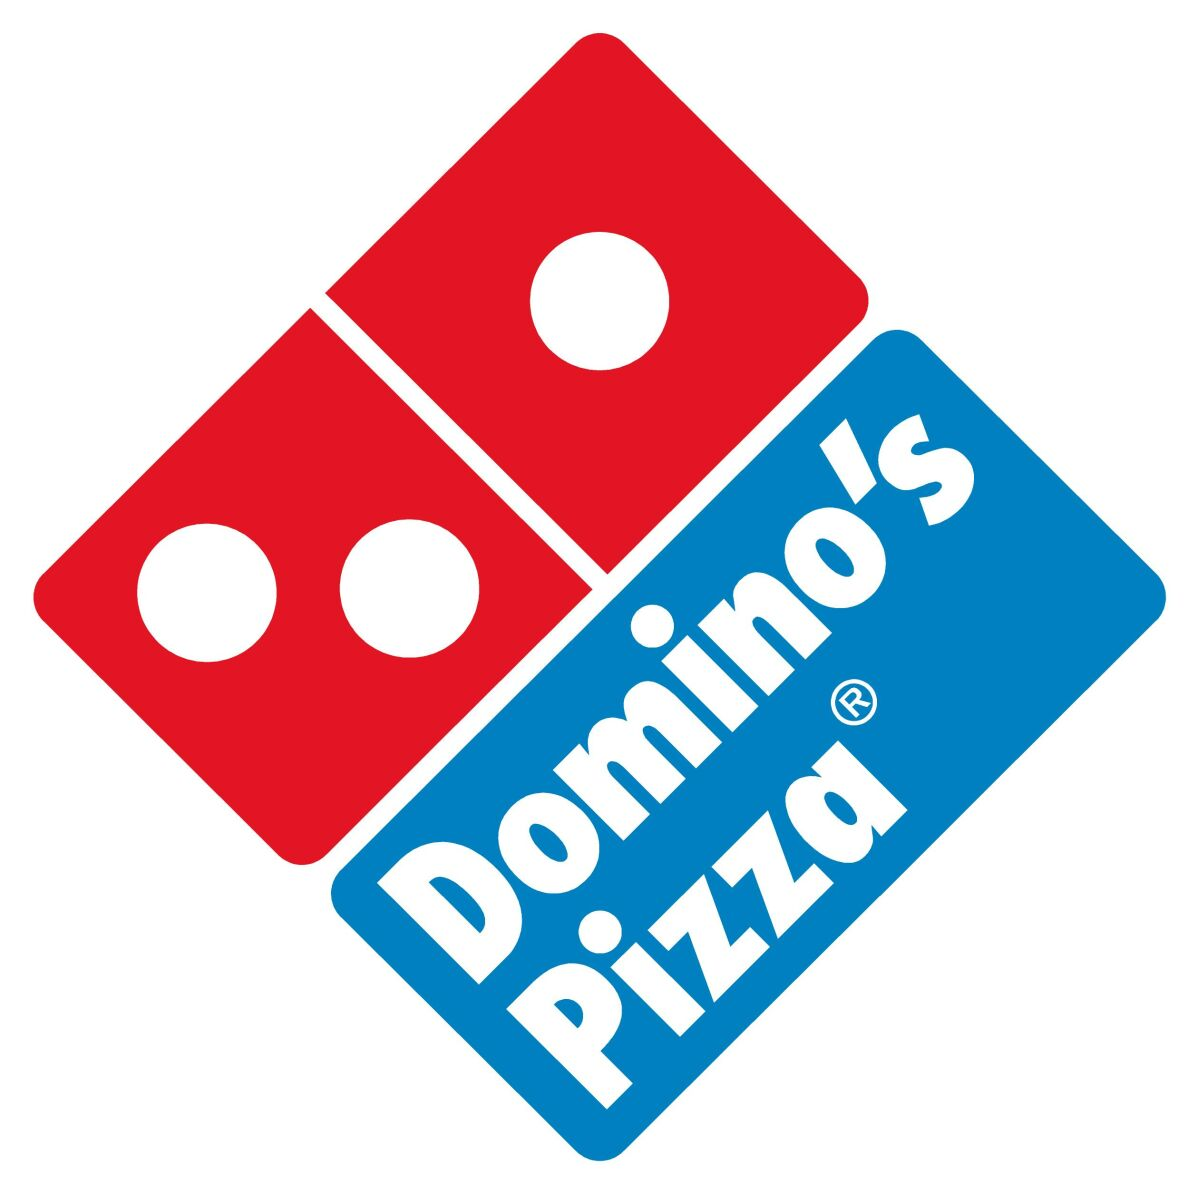 Dominos marketing doesn't mean a new brand